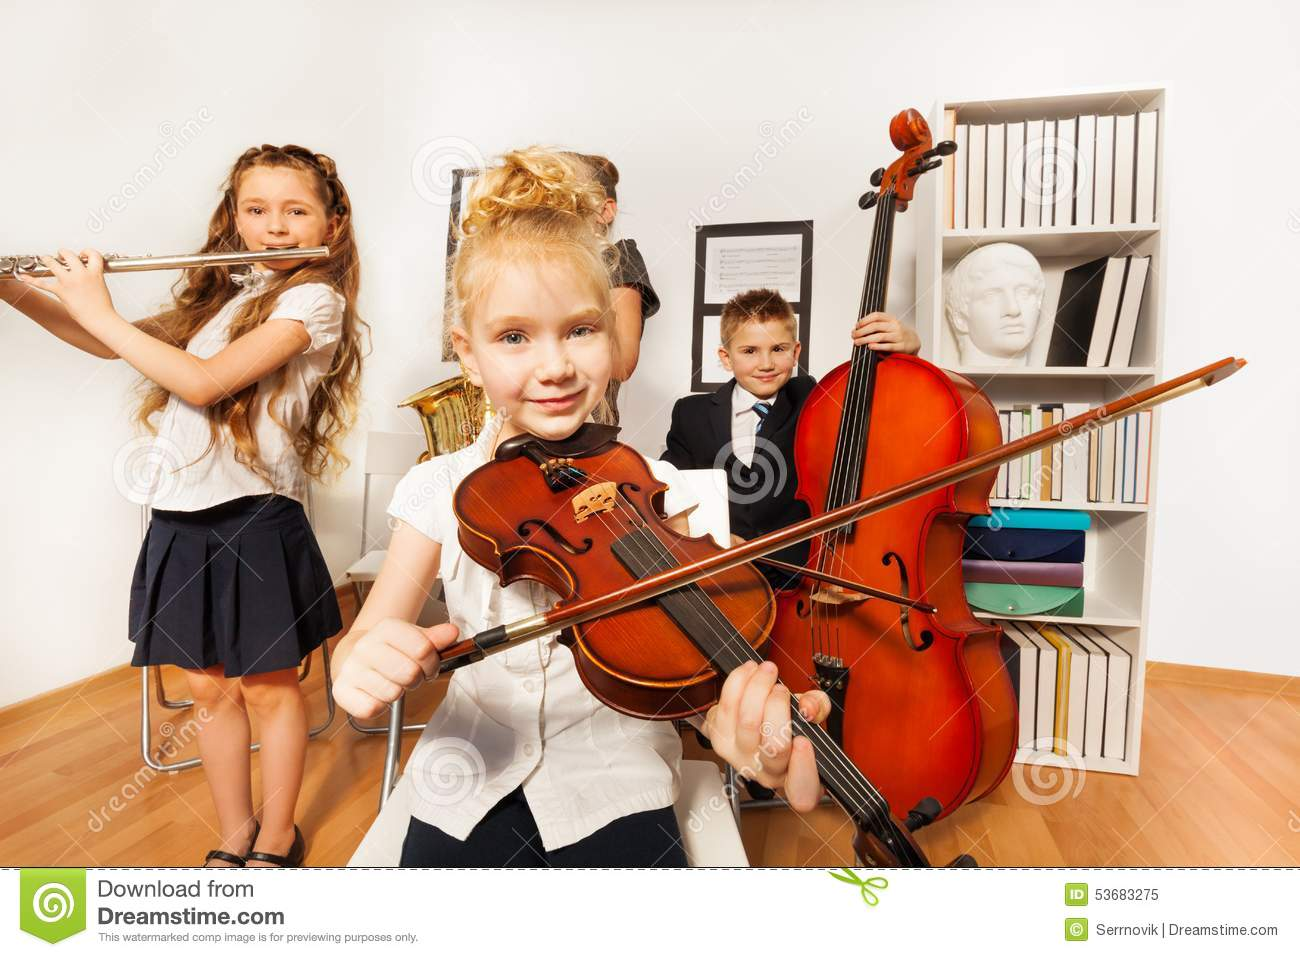 Worksheet Musical Instruments To Play school children play musical instruments together stock photo performance of kids who royalty free photo